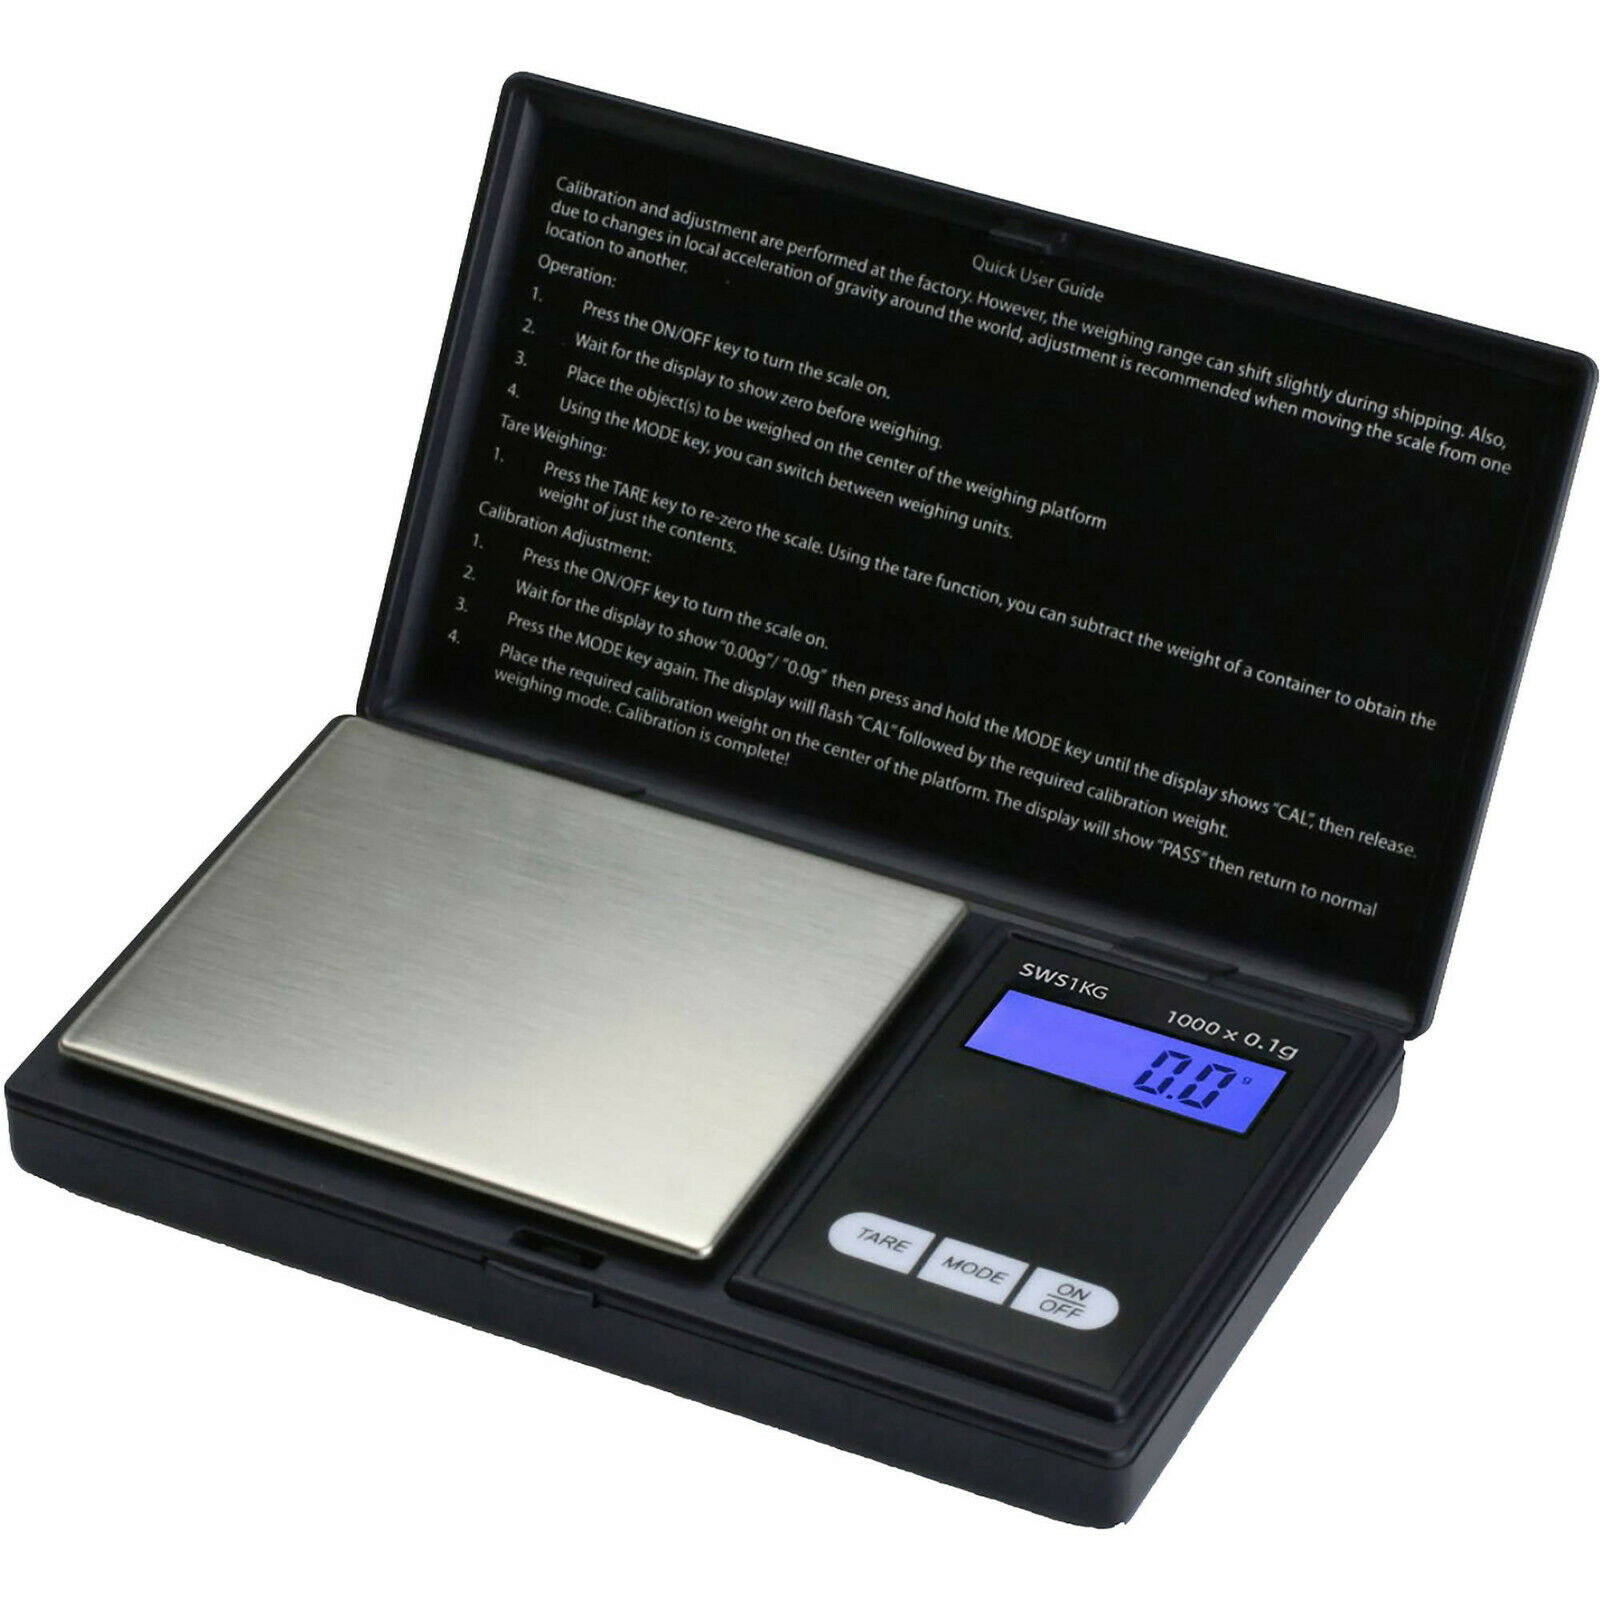 Smart Weigh Scales SWS-1000 Digital Pocket Scale 1000g Capacity- Black Home & Garden